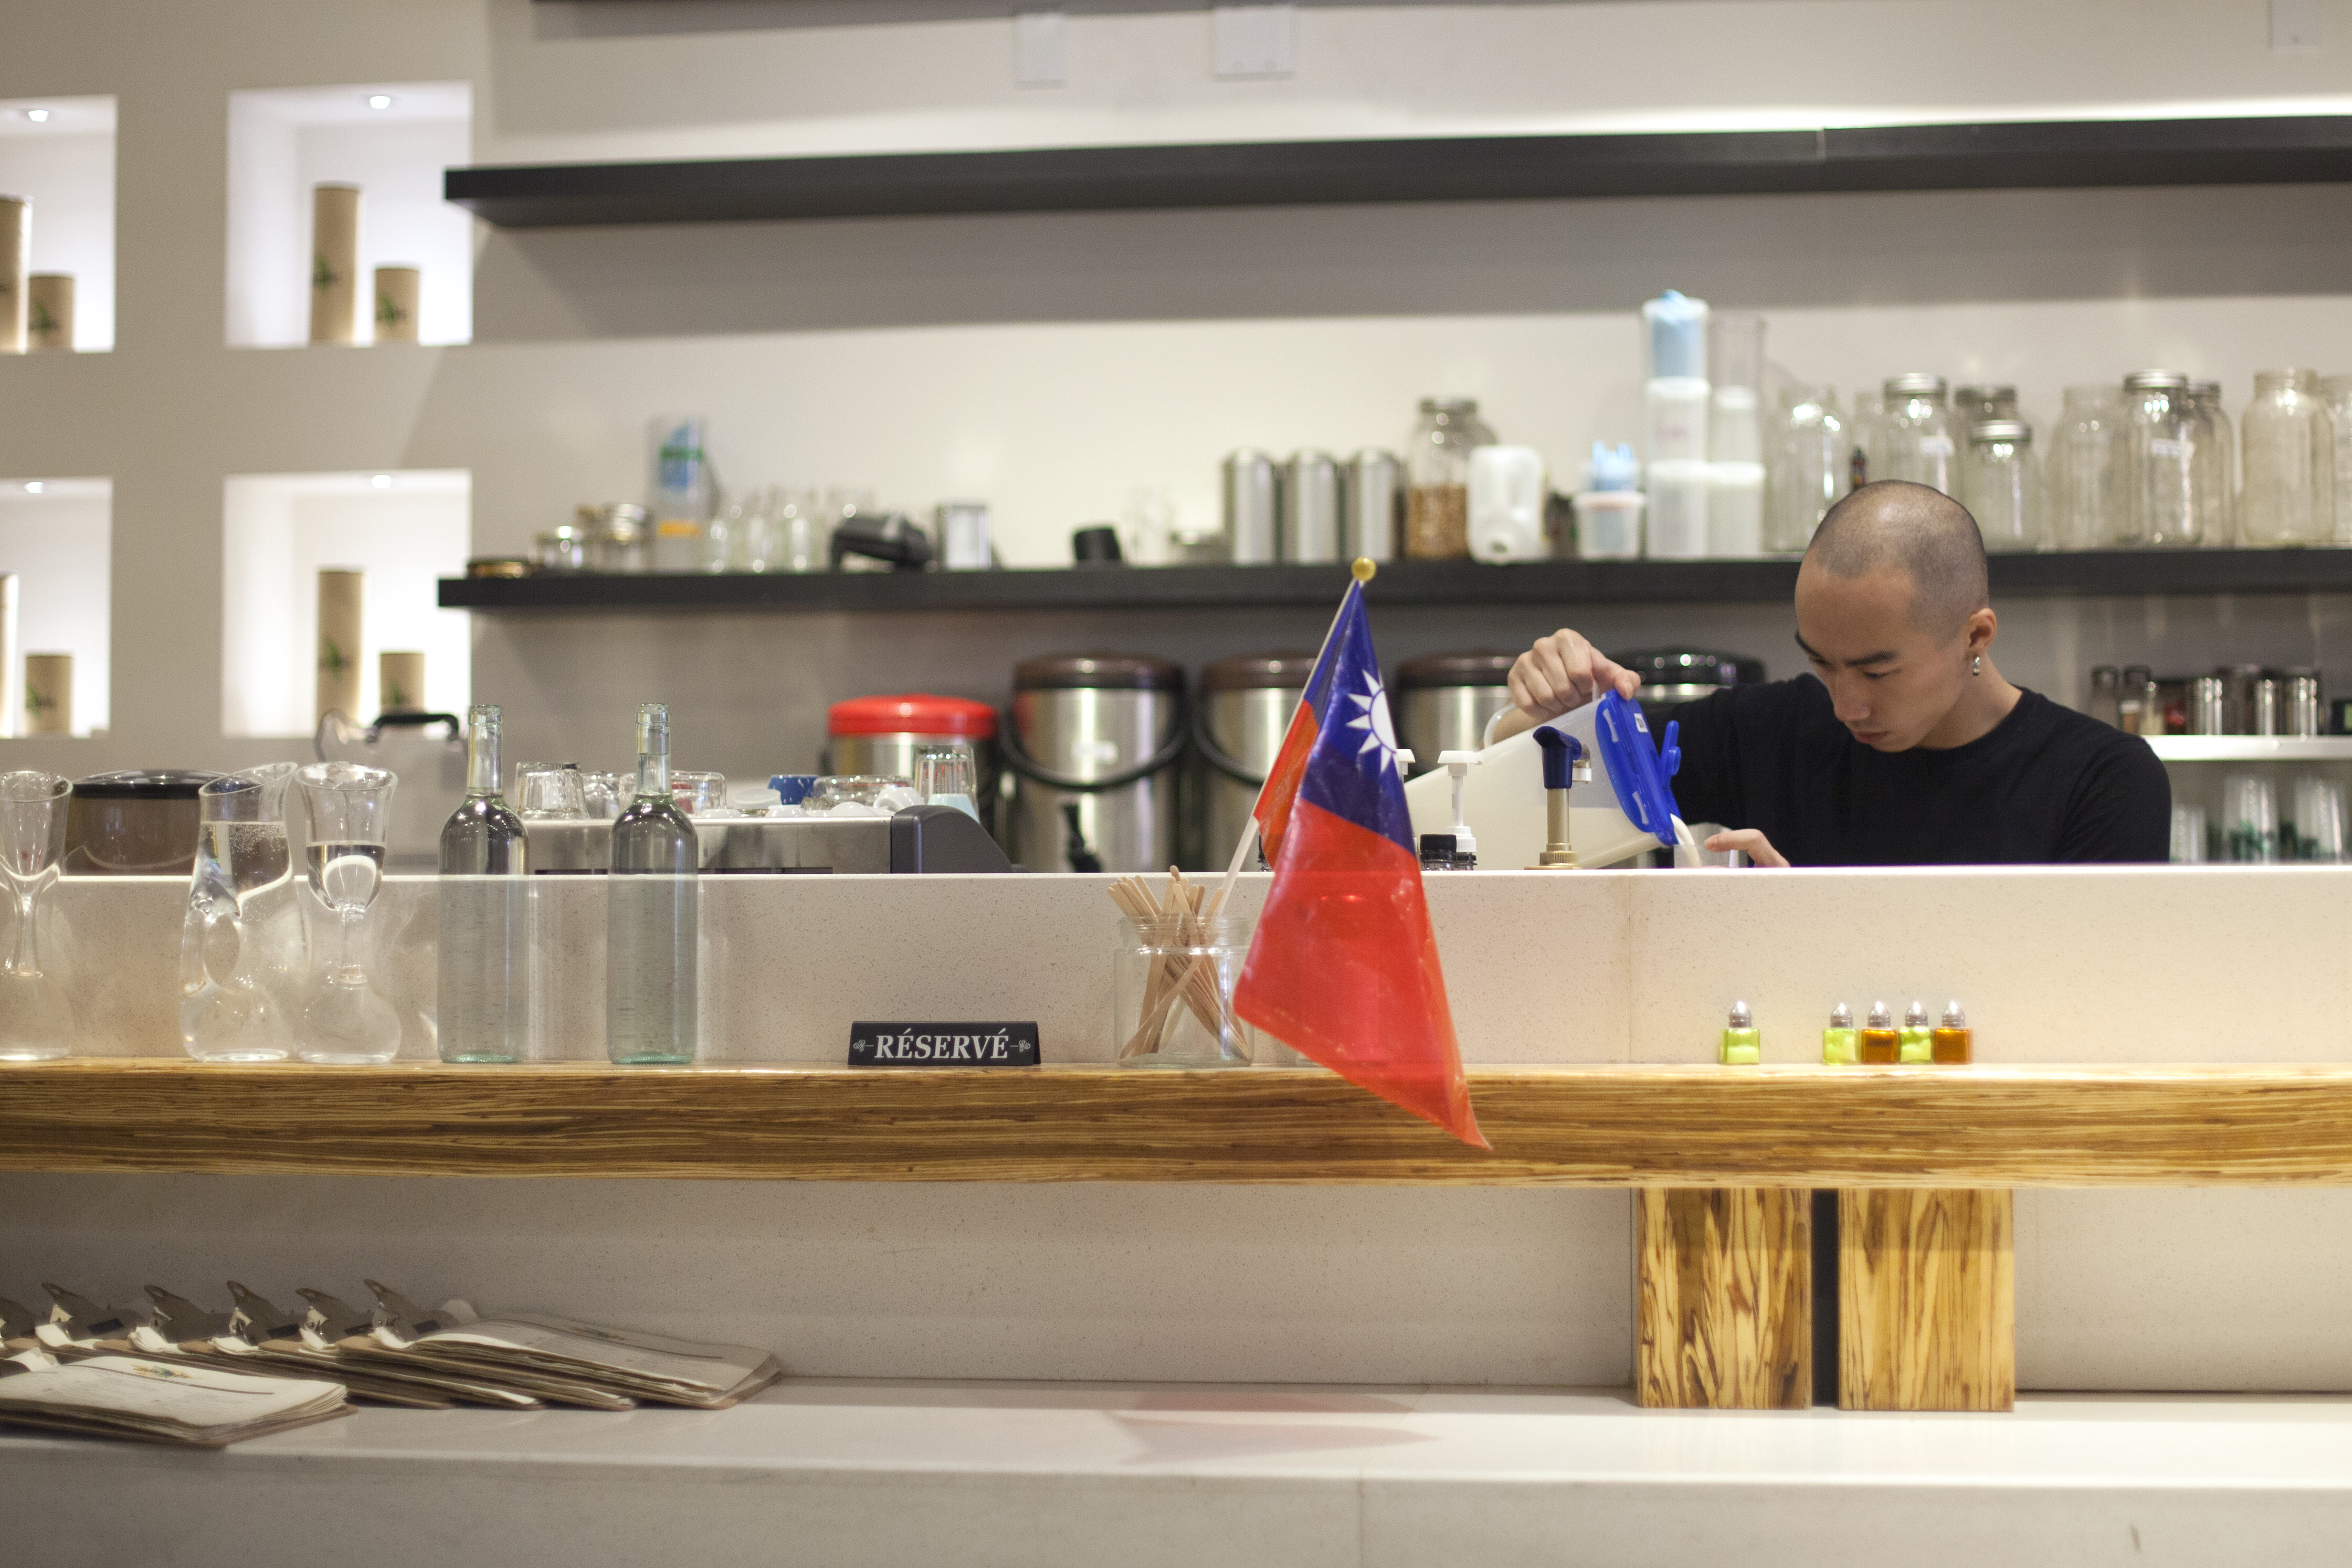 Sit down and order some Taiwanese food or take a bubble tea to go at Nos Thés. Picture by Marie-Pierre Savard.